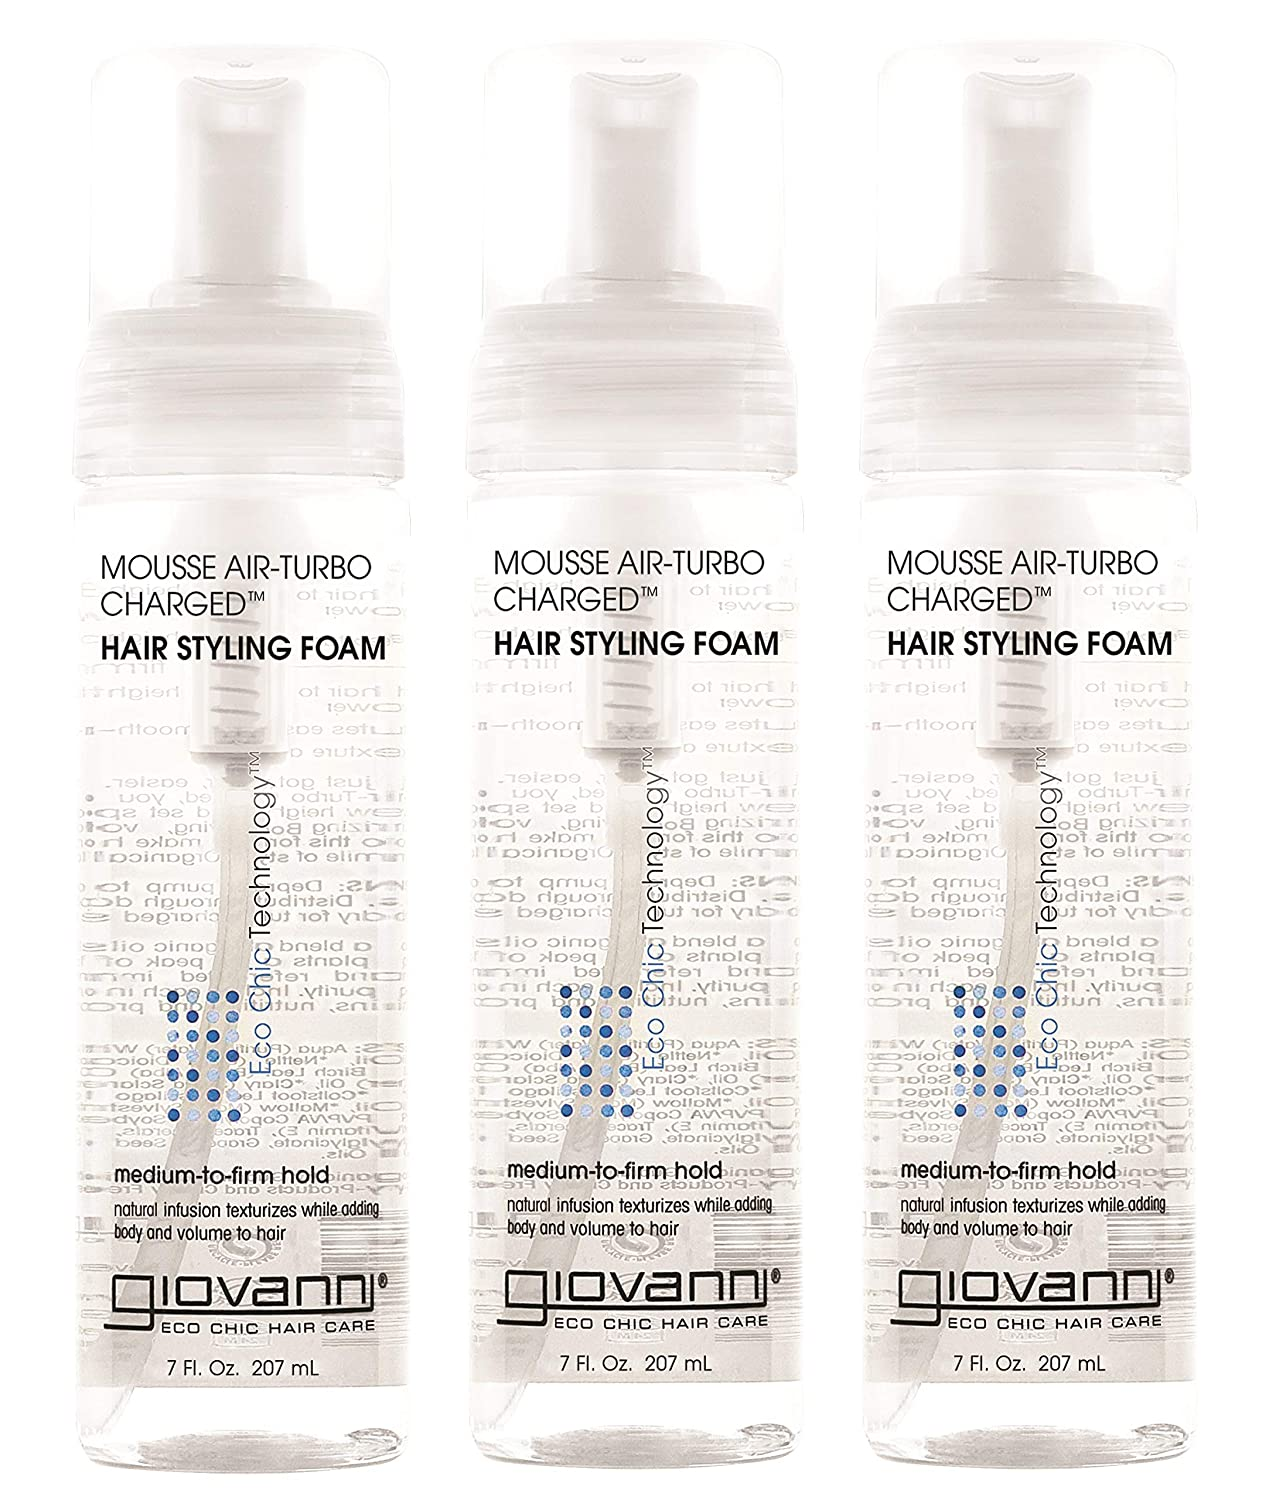 Giovanni Eco Chic Air-Turbo Charged Hair Styling Foam, 7 Fl. Oz (Pack of 3)